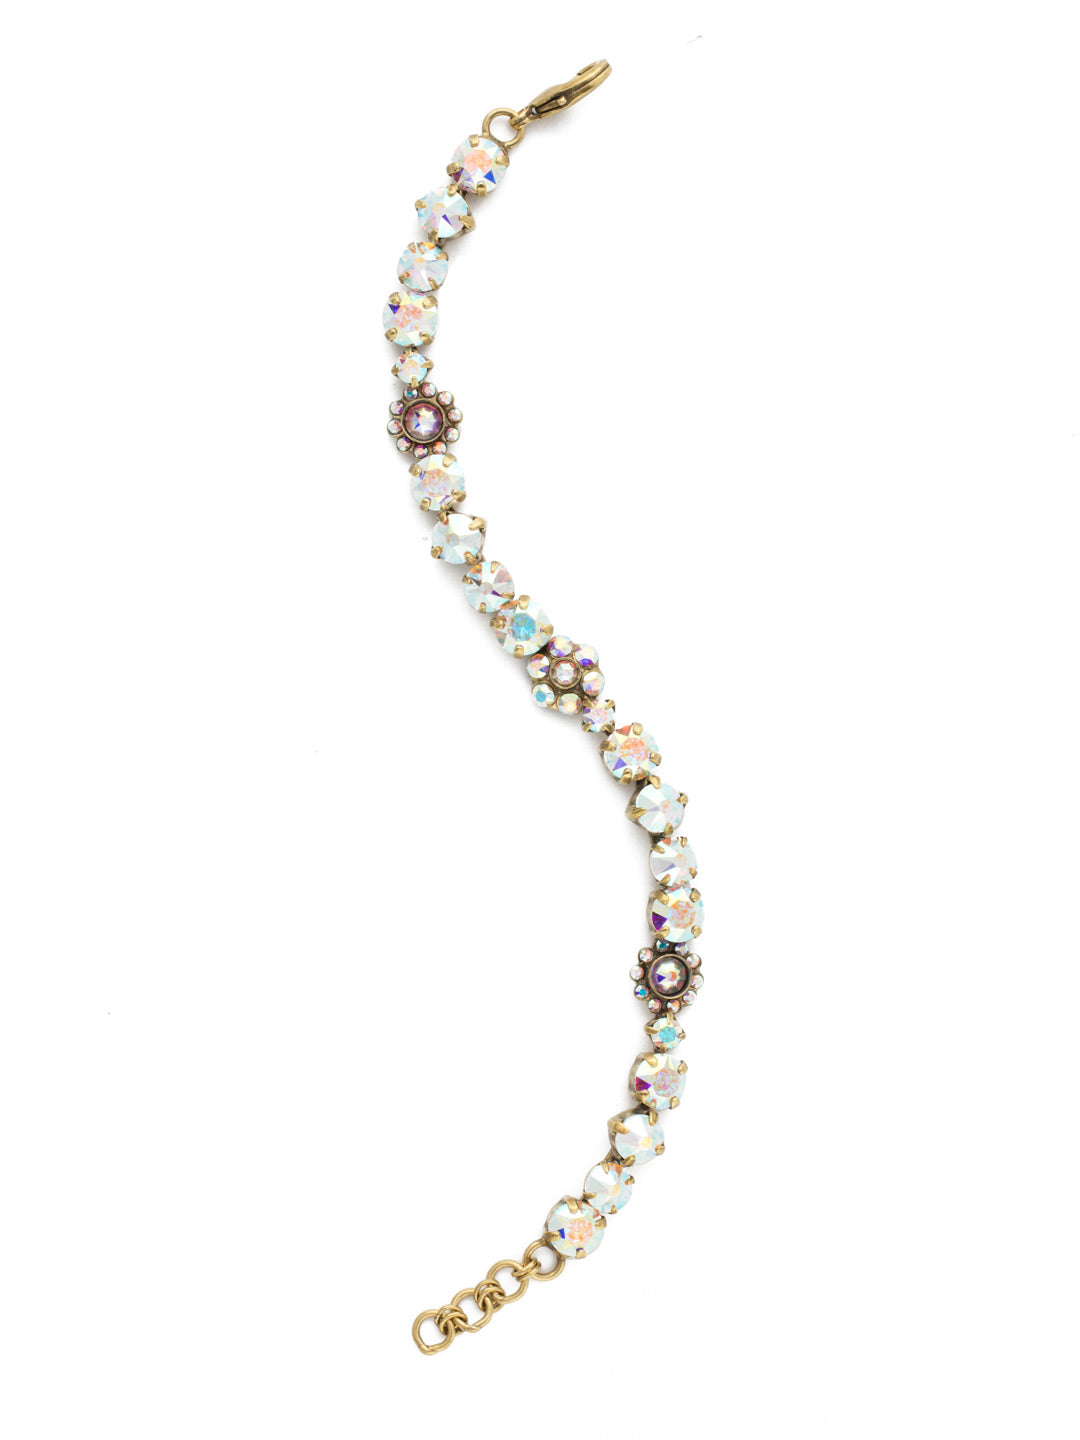 Classic Floral Tennis Bracelet - BBE2AGSNF